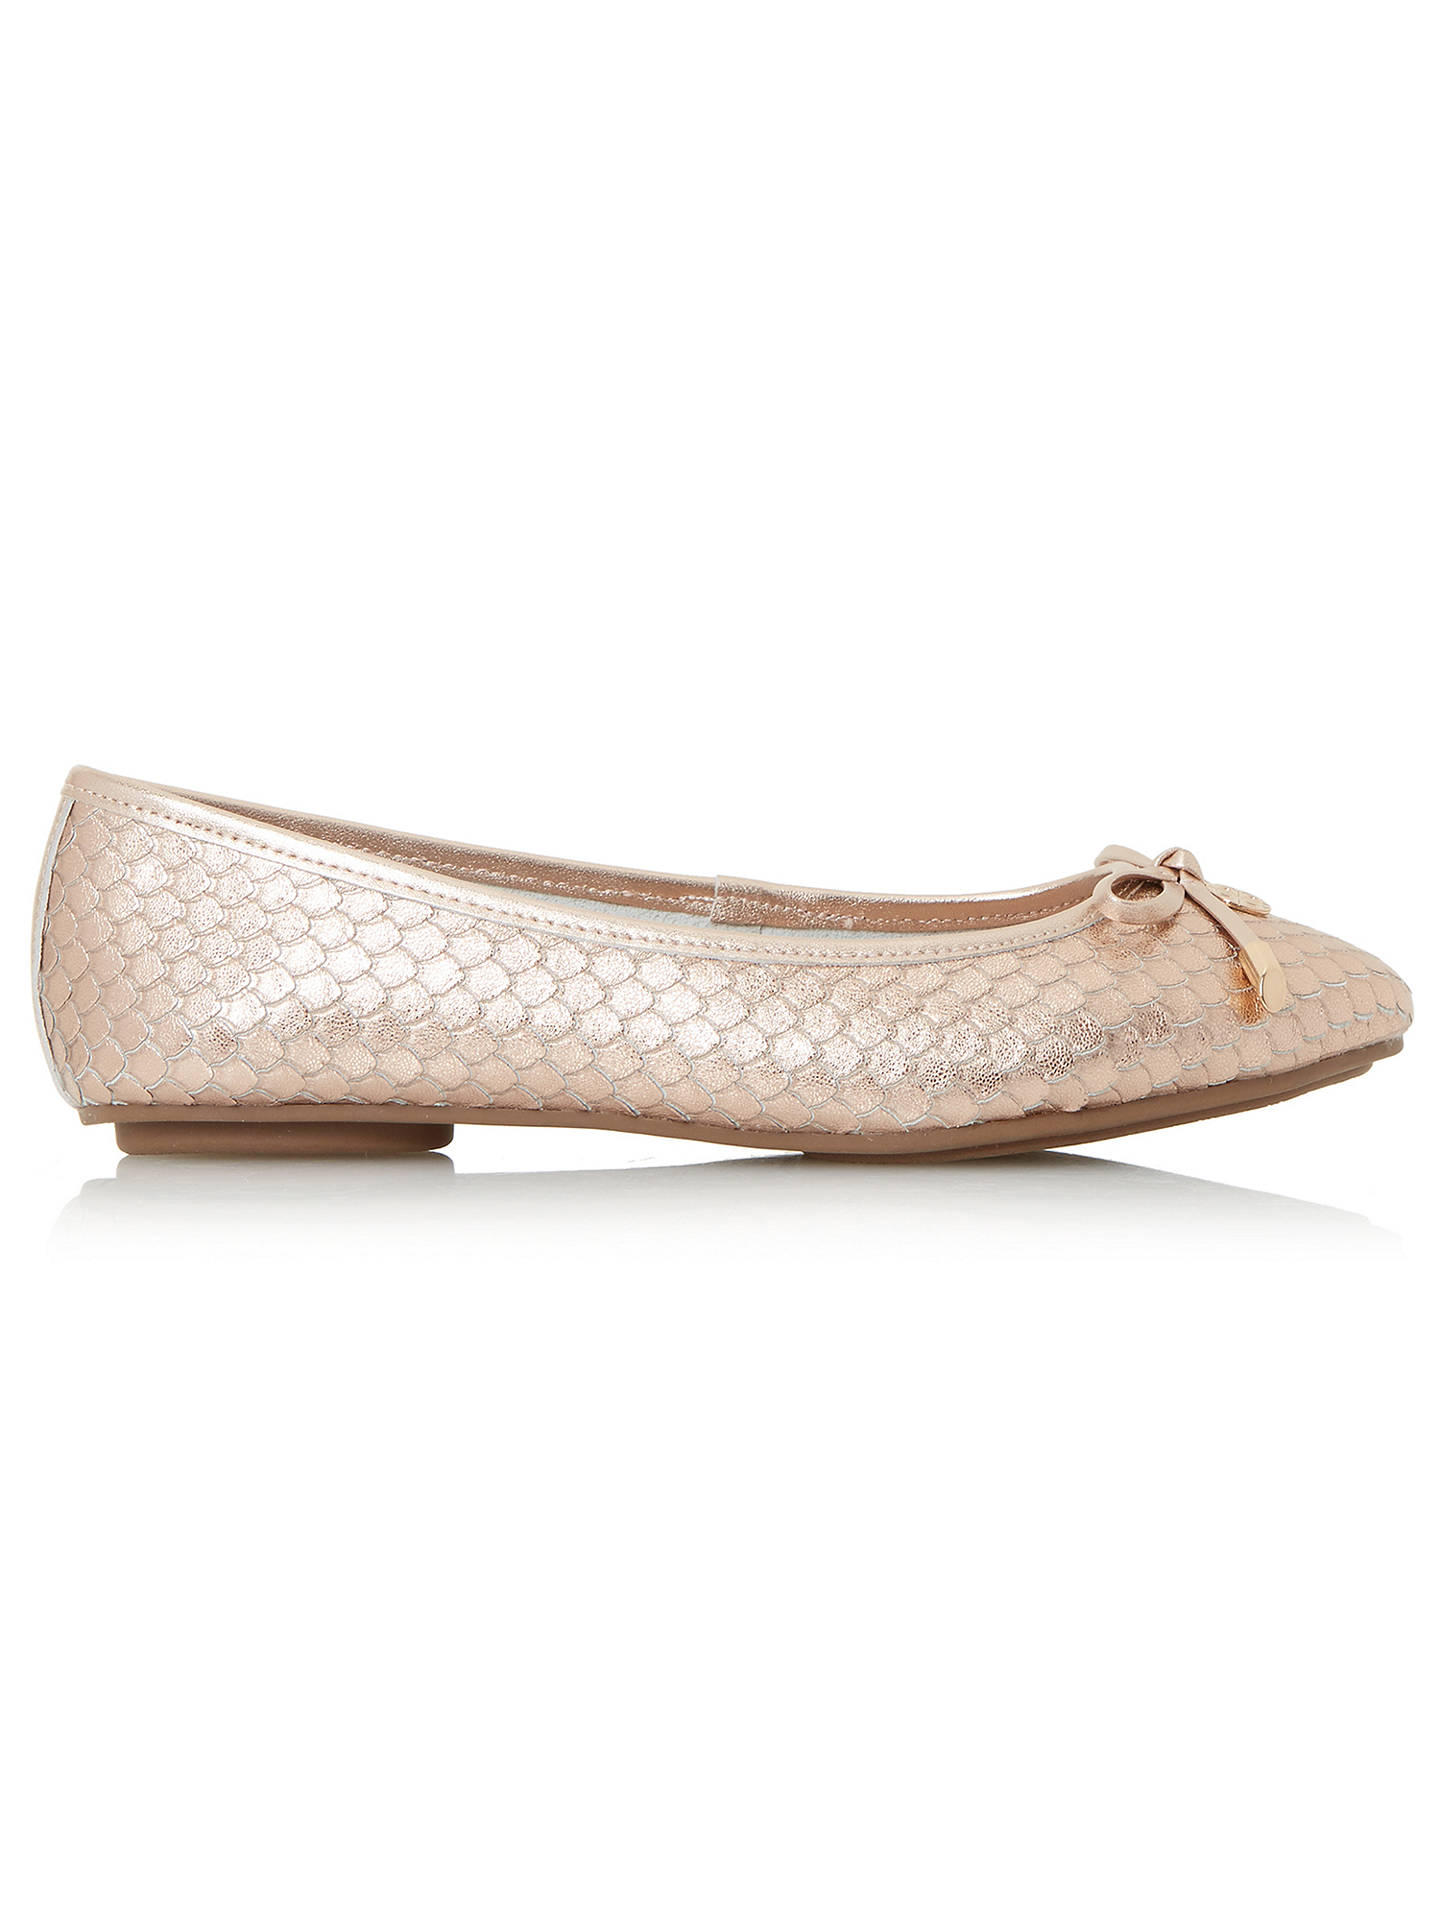 BuyDune Wide Fit Hype Bow Ballet Pumps, Rose Gold, 3 Online at johnlewis.com